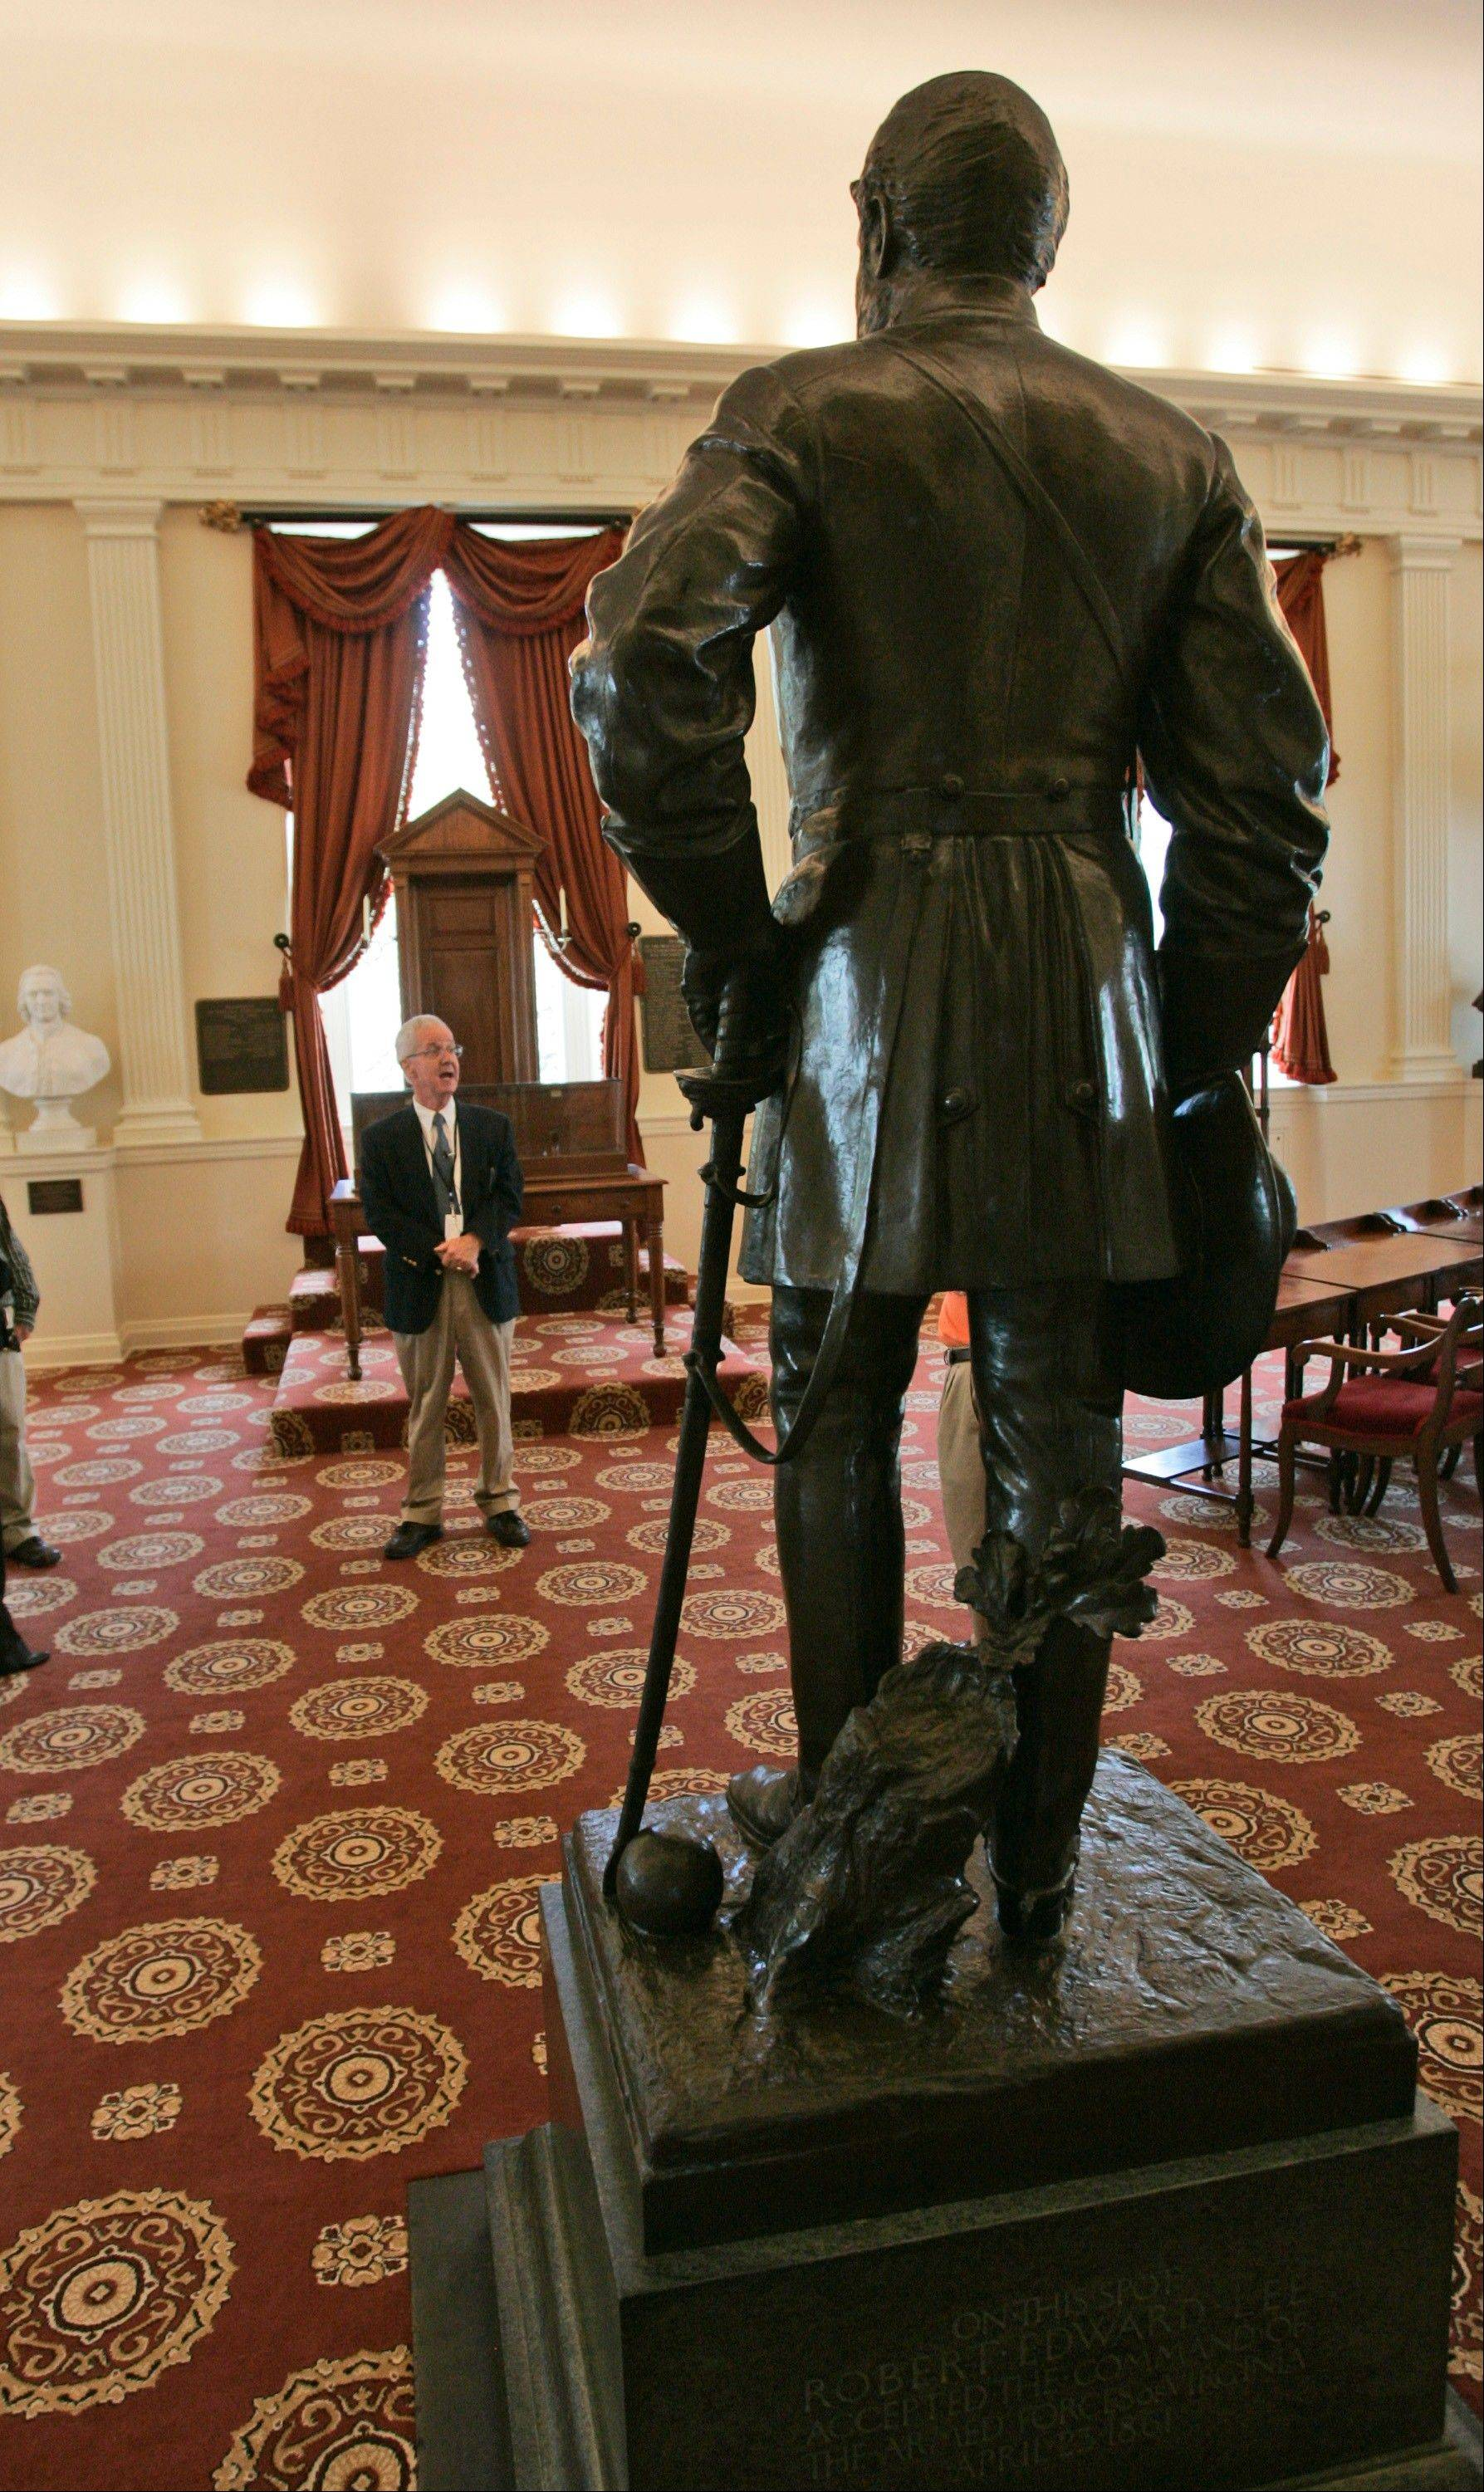 A tour guide leads a tour in the Old Senate Chambers at the State Capitol in Richmond, Va. Statues of Virginia historic figures dot the grounds.